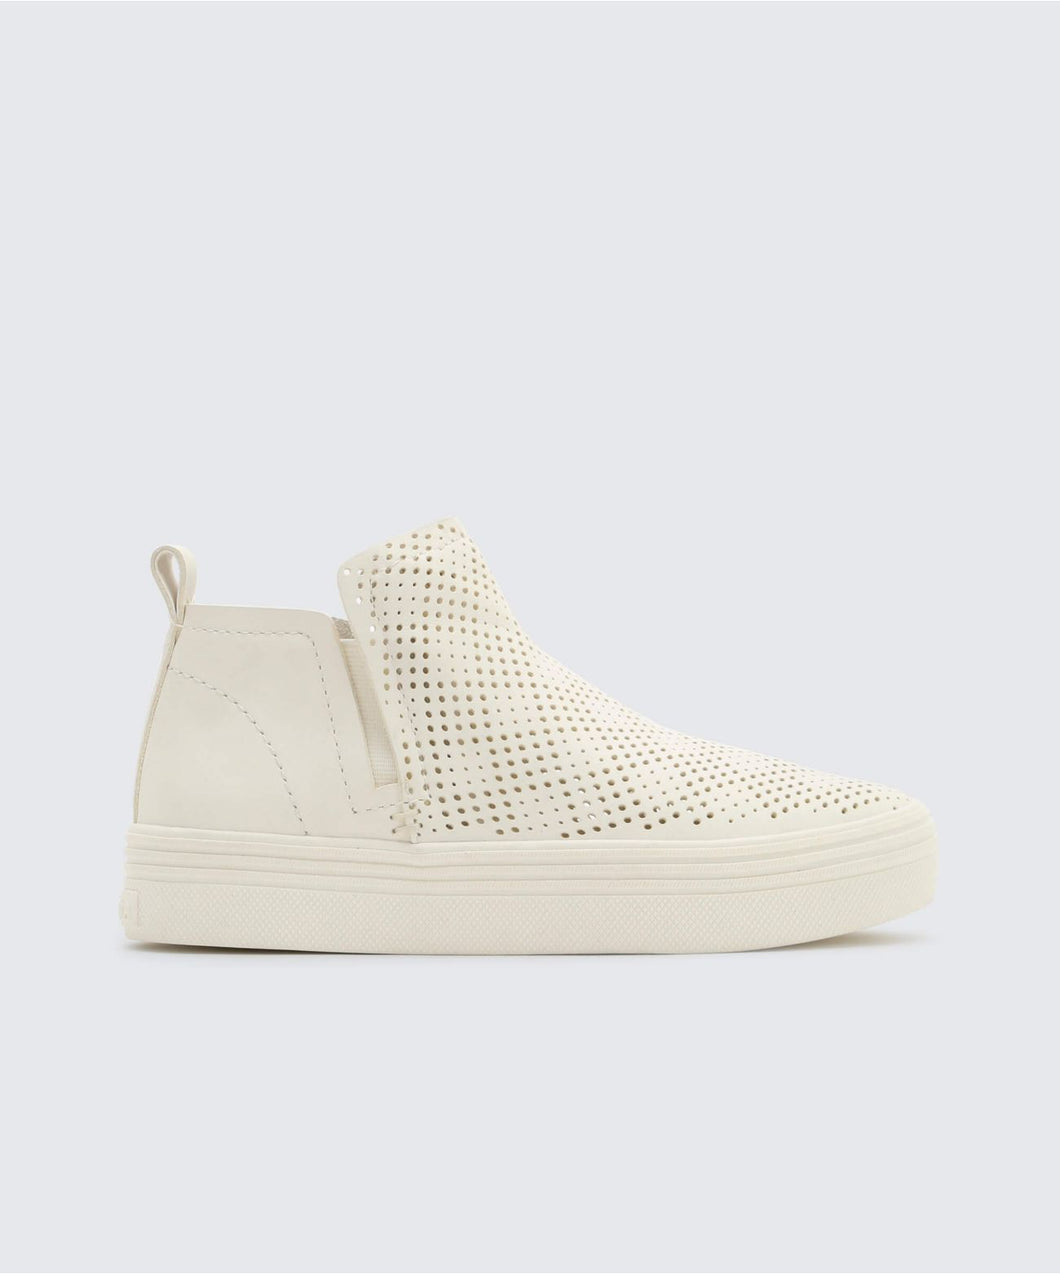 TATE PERF SNEAKERS IN OFF WHITE -   Dolce Vita